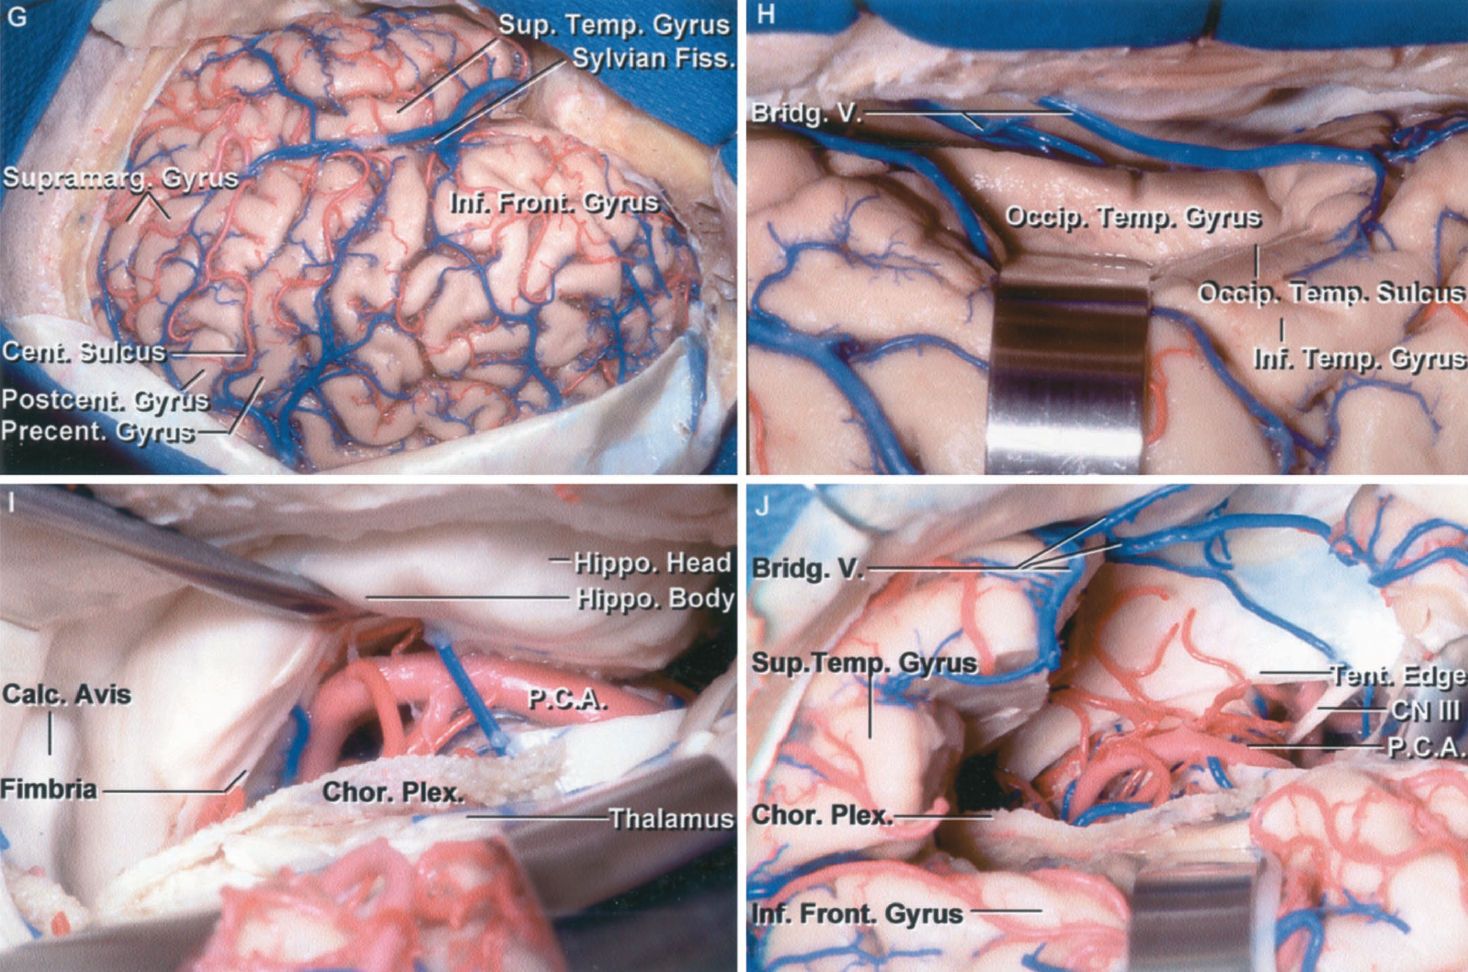 Figure 1.19 G-J G, exposure for left temporal lobectomy. The exposure includes the frontal and temporal lobe, as might be used for extensive cortical recording and mapping. The exposure is greater than normally used for a standard temporal lobectomy. H, an approach that preserves more of the neocortical surface is to open through a sulcus like the occipitotemporal sulcus located between the inferior temporal and occipitotemporal gyri. I, the left temporal horn and hippocampal body and head have been exposed. The choroidal fissure has been opened by dividing the tenia fimbria that attaches the choroid plexus to the fimbria on the surface of the hippocampus. The choroid plexus remains attached to the thalamus. J, a temporal lobectomy has been completed. The third nerve, posterior cerebral artery, and tentorial edge are in the medial part of the exposure. A large bridging vein passes from the sylvian fissure below the temporal lobe to empty into a tentorial sinus. After disconnecting the hippocampus medially, the resection is extended across the head of the hippocampus behind the amygdala. A., artery; A.Ch.A., anterior choroidal artery; Ant., anterior; Car., carotid; Cist., cistern; Chor., choroid, choroidal; CN, cranial nerve; Coll., colliculus; Fiss., fissure; Frontozyg., frontozygomatic; Gen., geniculate; Hippo., hippocampal; Inf., inferior; L.P.Ch.A., lateral posterior choroidal artery; Lat., lateral; M., muscle; Med., medial; P.C.A., posterior cerebral artery; P.Co.A., posterior communicating artery; Ped., peduncle; Plex., plexus; Post., posterior; Seg., segment; Sup., superior; Temp., temporal; V., vein; Vent., ventricular.